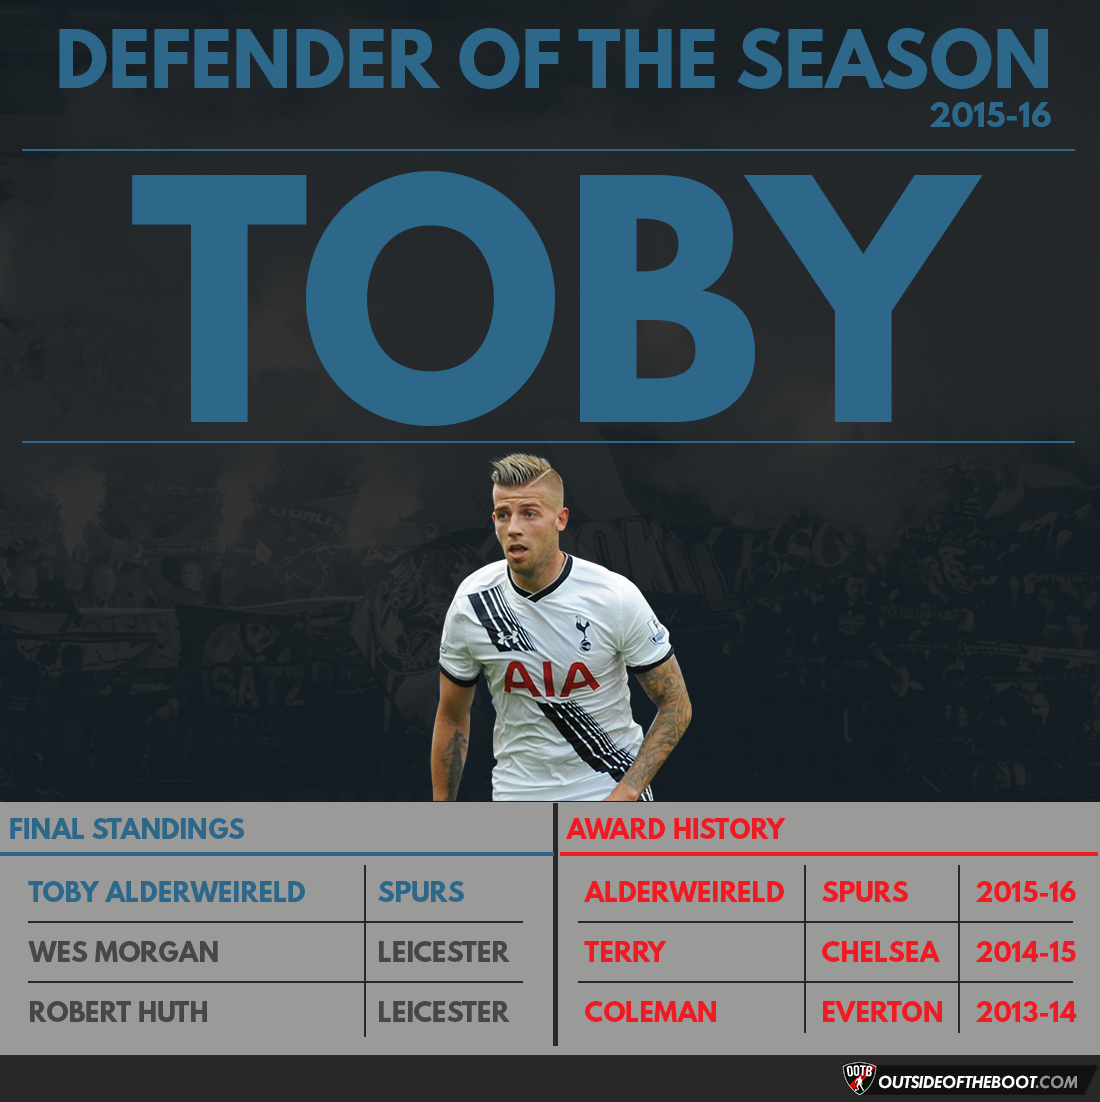 Premier League Defender of the Season 2015-16